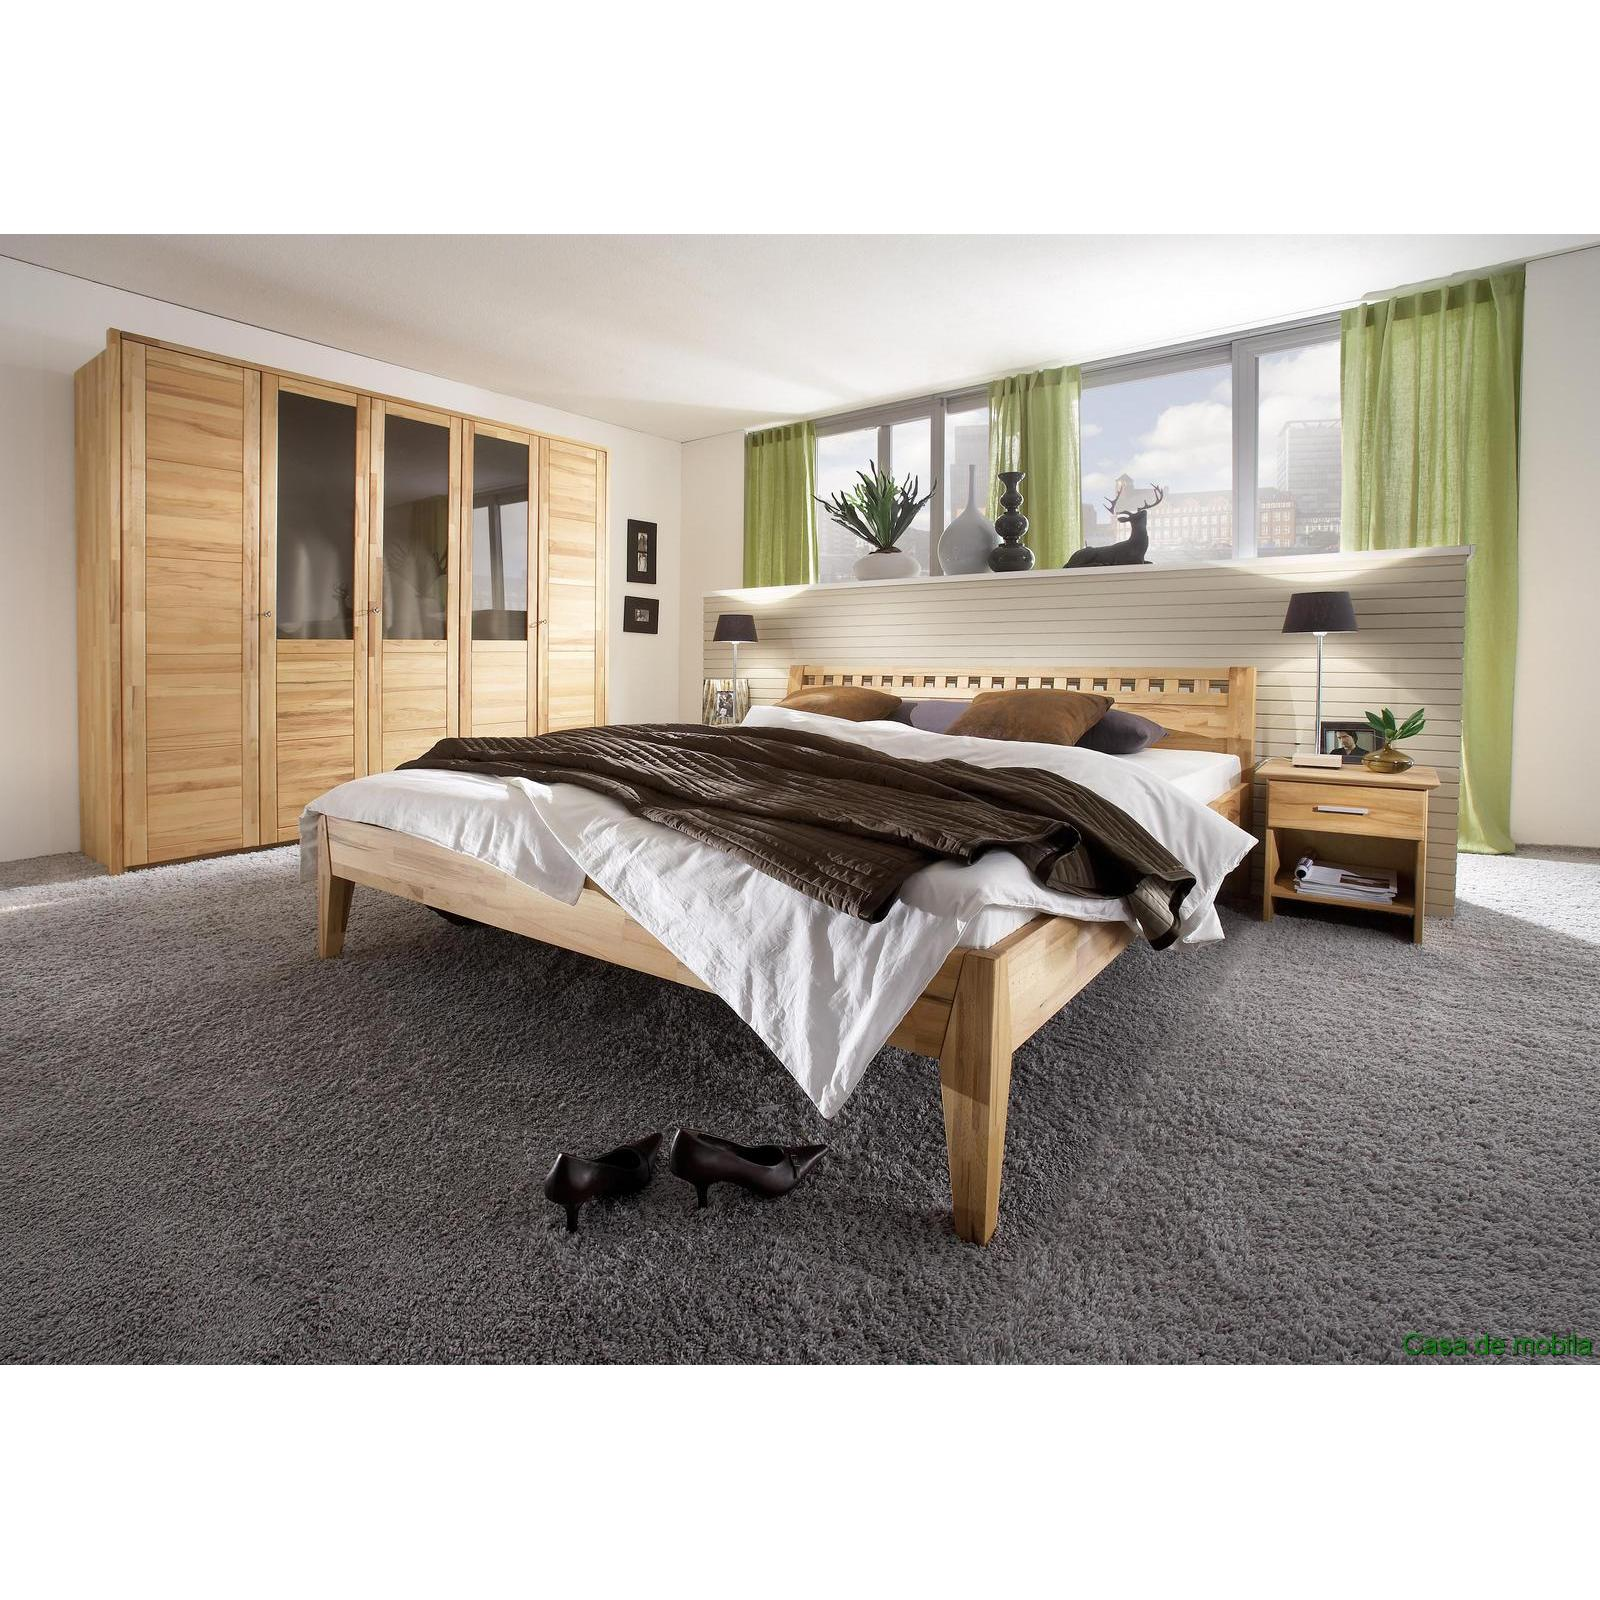 vollholz schlafzimmer m bel komplett kernbuche massiv holz ge lt bett 140x200. Black Bedroom Furniture Sets. Home Design Ideas